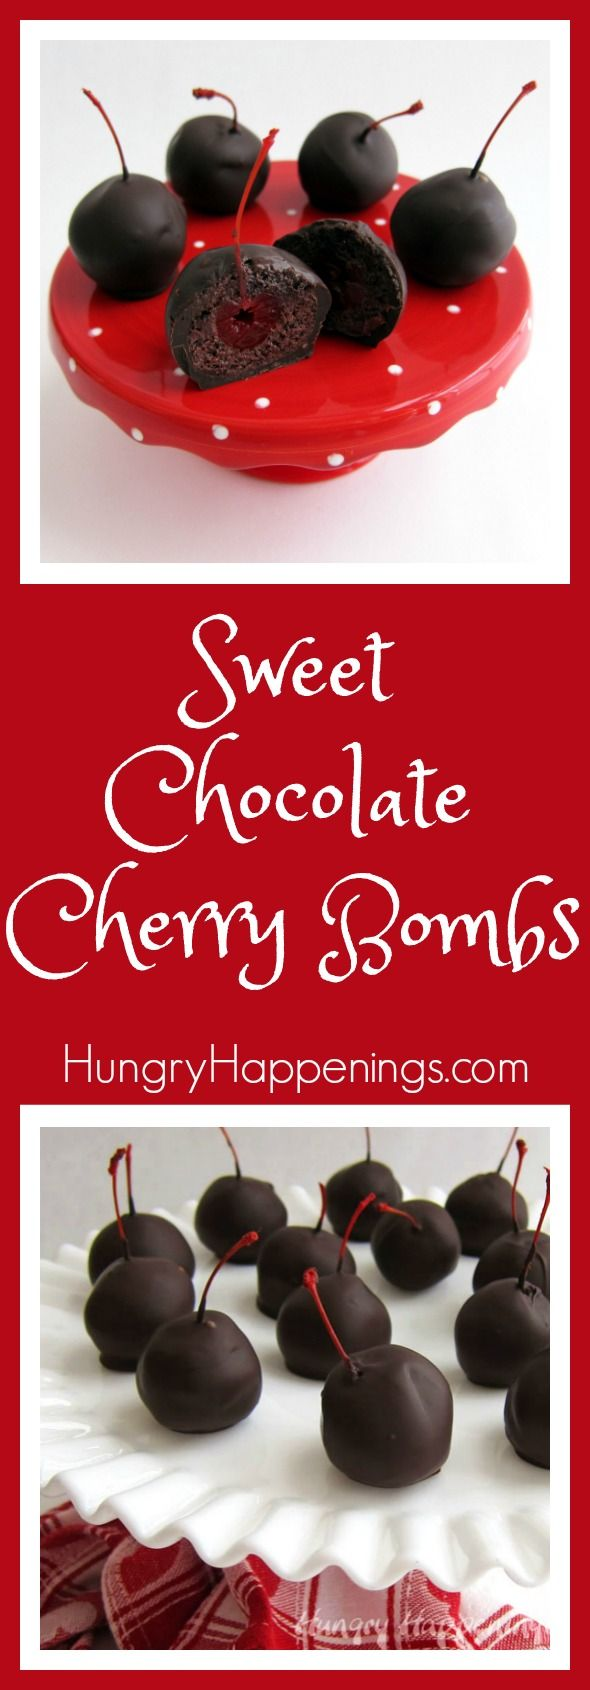 Drop a love bomb on your significant other and give them a classic. These Sweet Chocolate Cherry Bombs will melt in your mouth and give your taste buds an explosion of flavor.